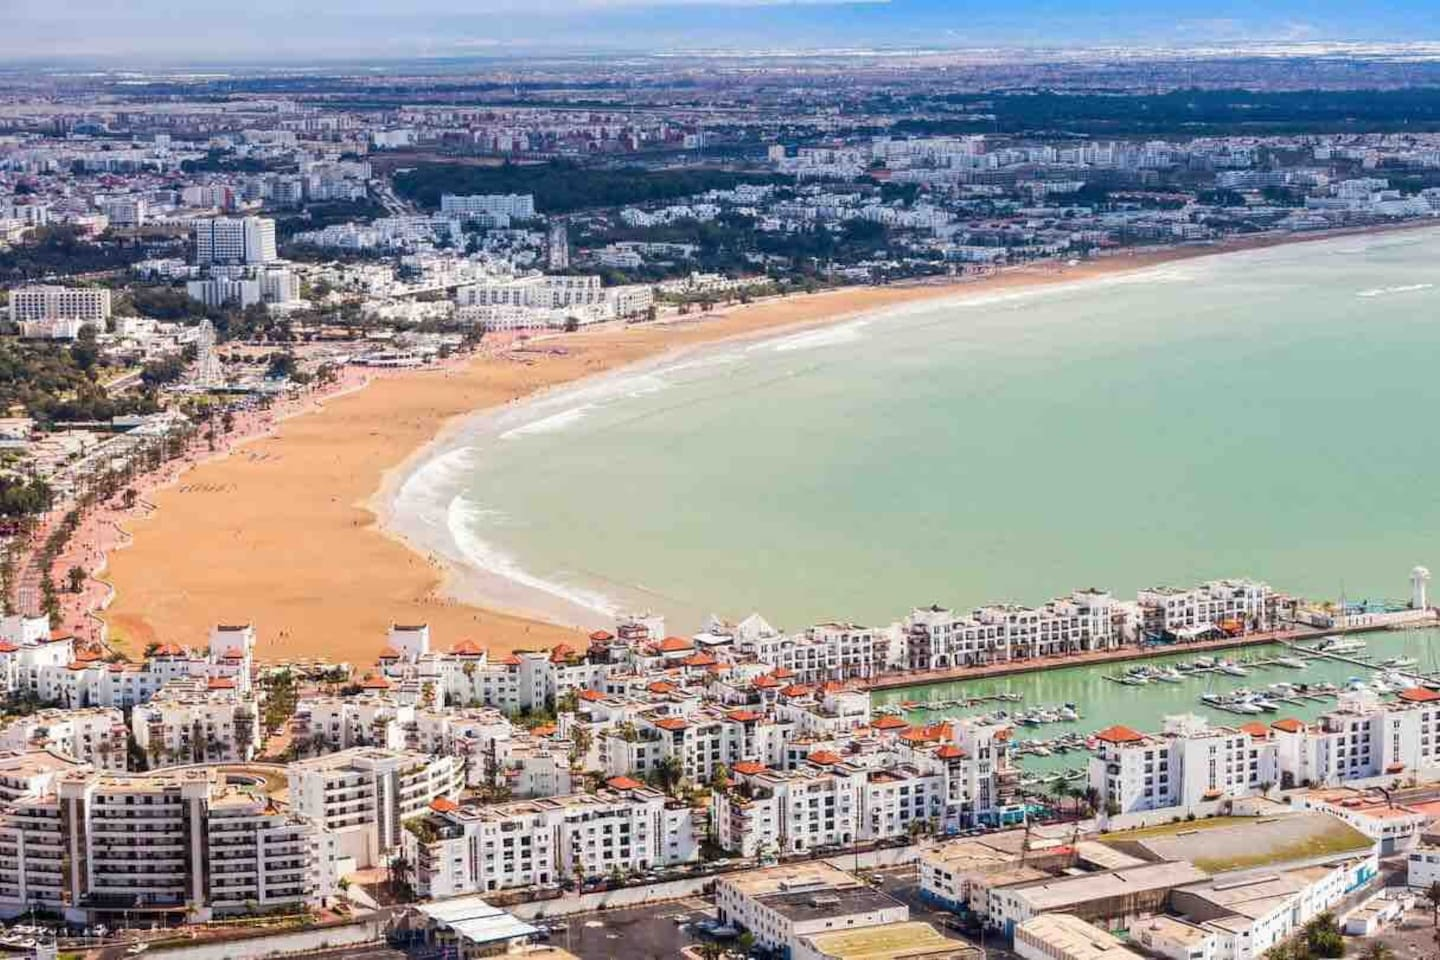 Aerial view of Agadir beach